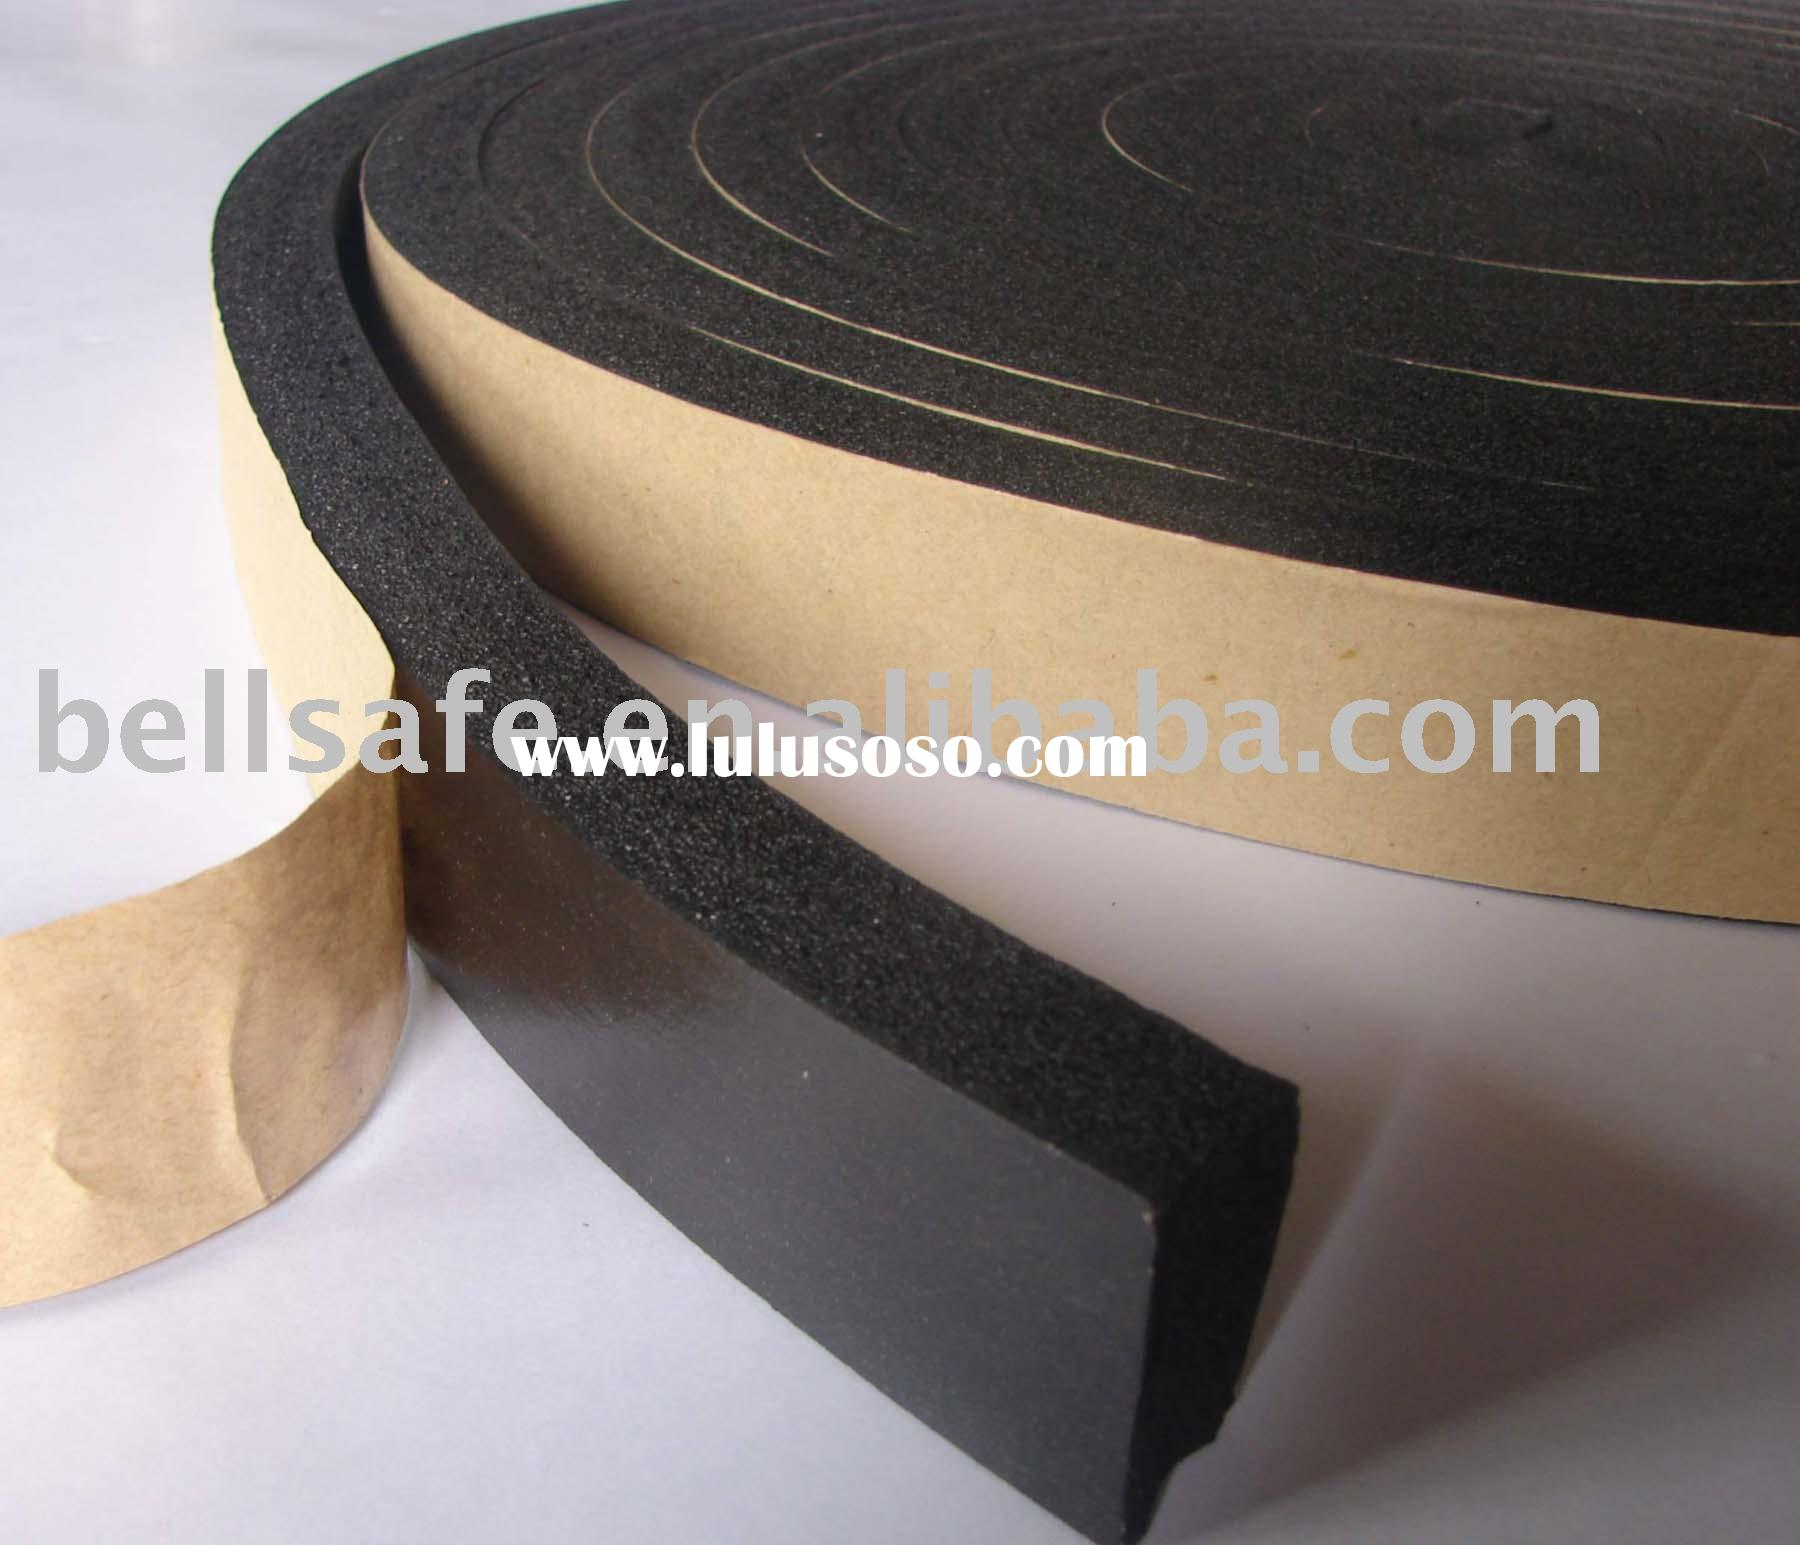 Insulation Foam Tube For Air Copper Pipe For Sale Price